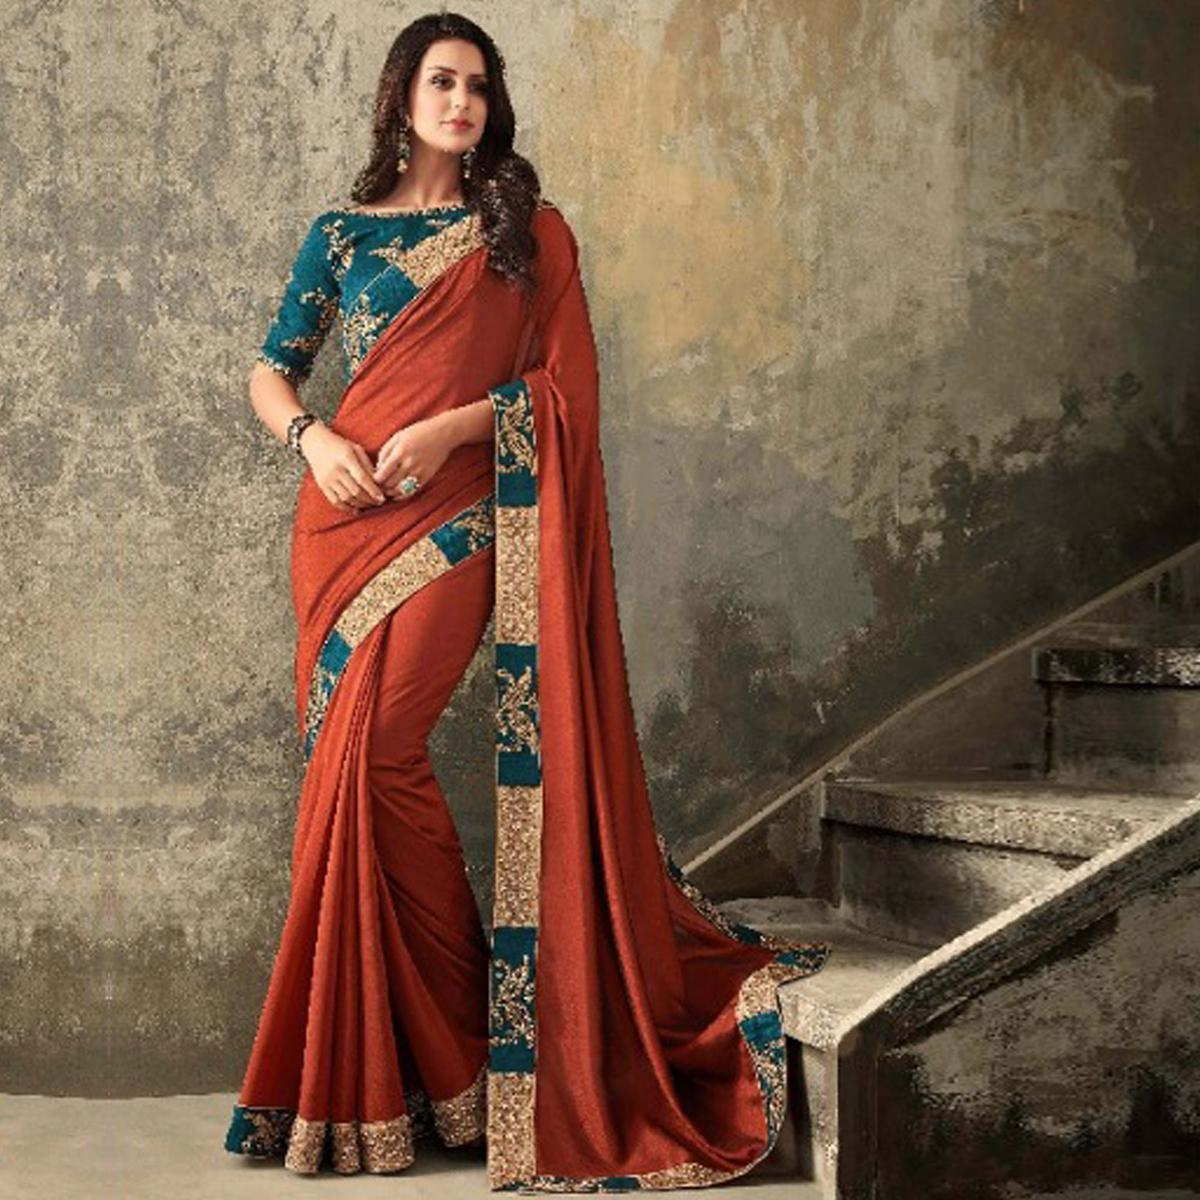 Sensational Rust Orange Colored Party Wear Embroidered Art Silk Saree